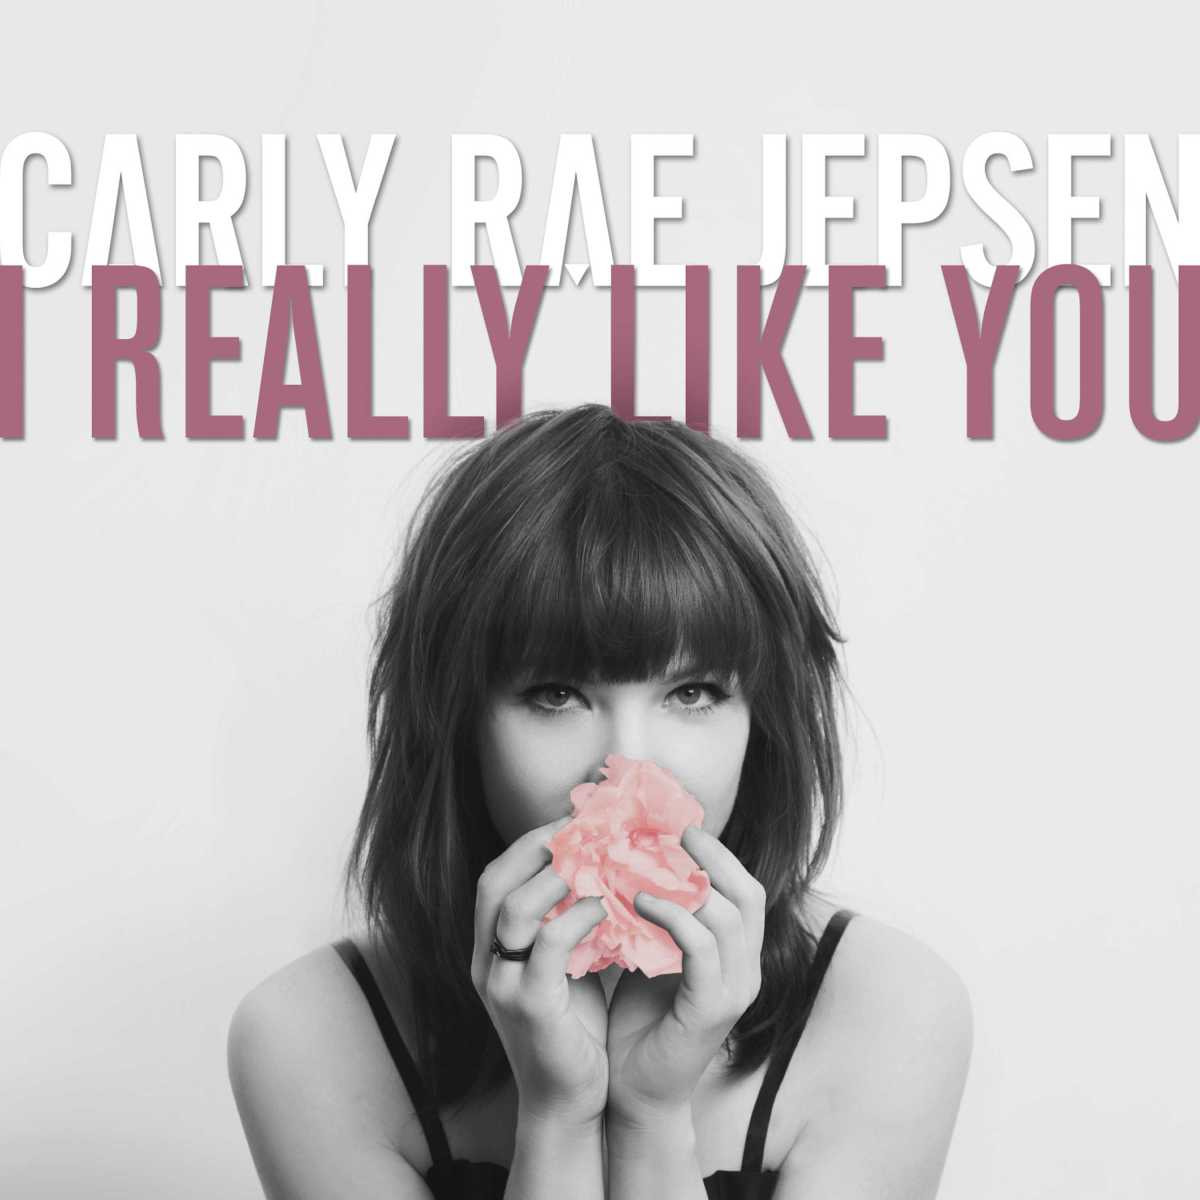 Hot Video Alert: Carly Rae Jepsen - I Really Like You